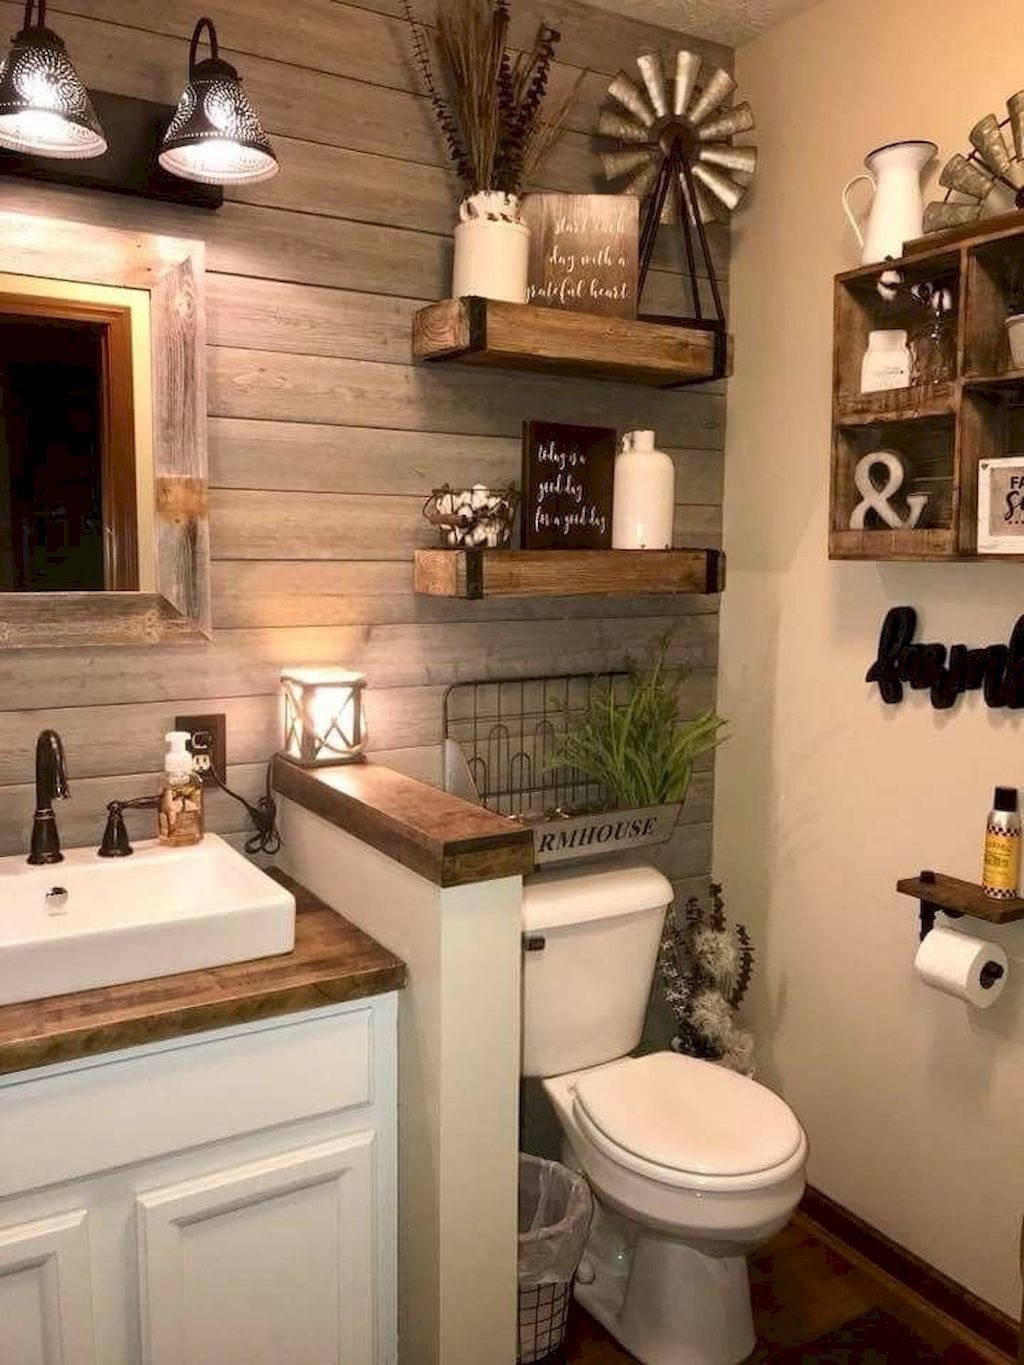 Beautiful Rustic Bathroom Decor Ideas 48 In 2019 For The Home